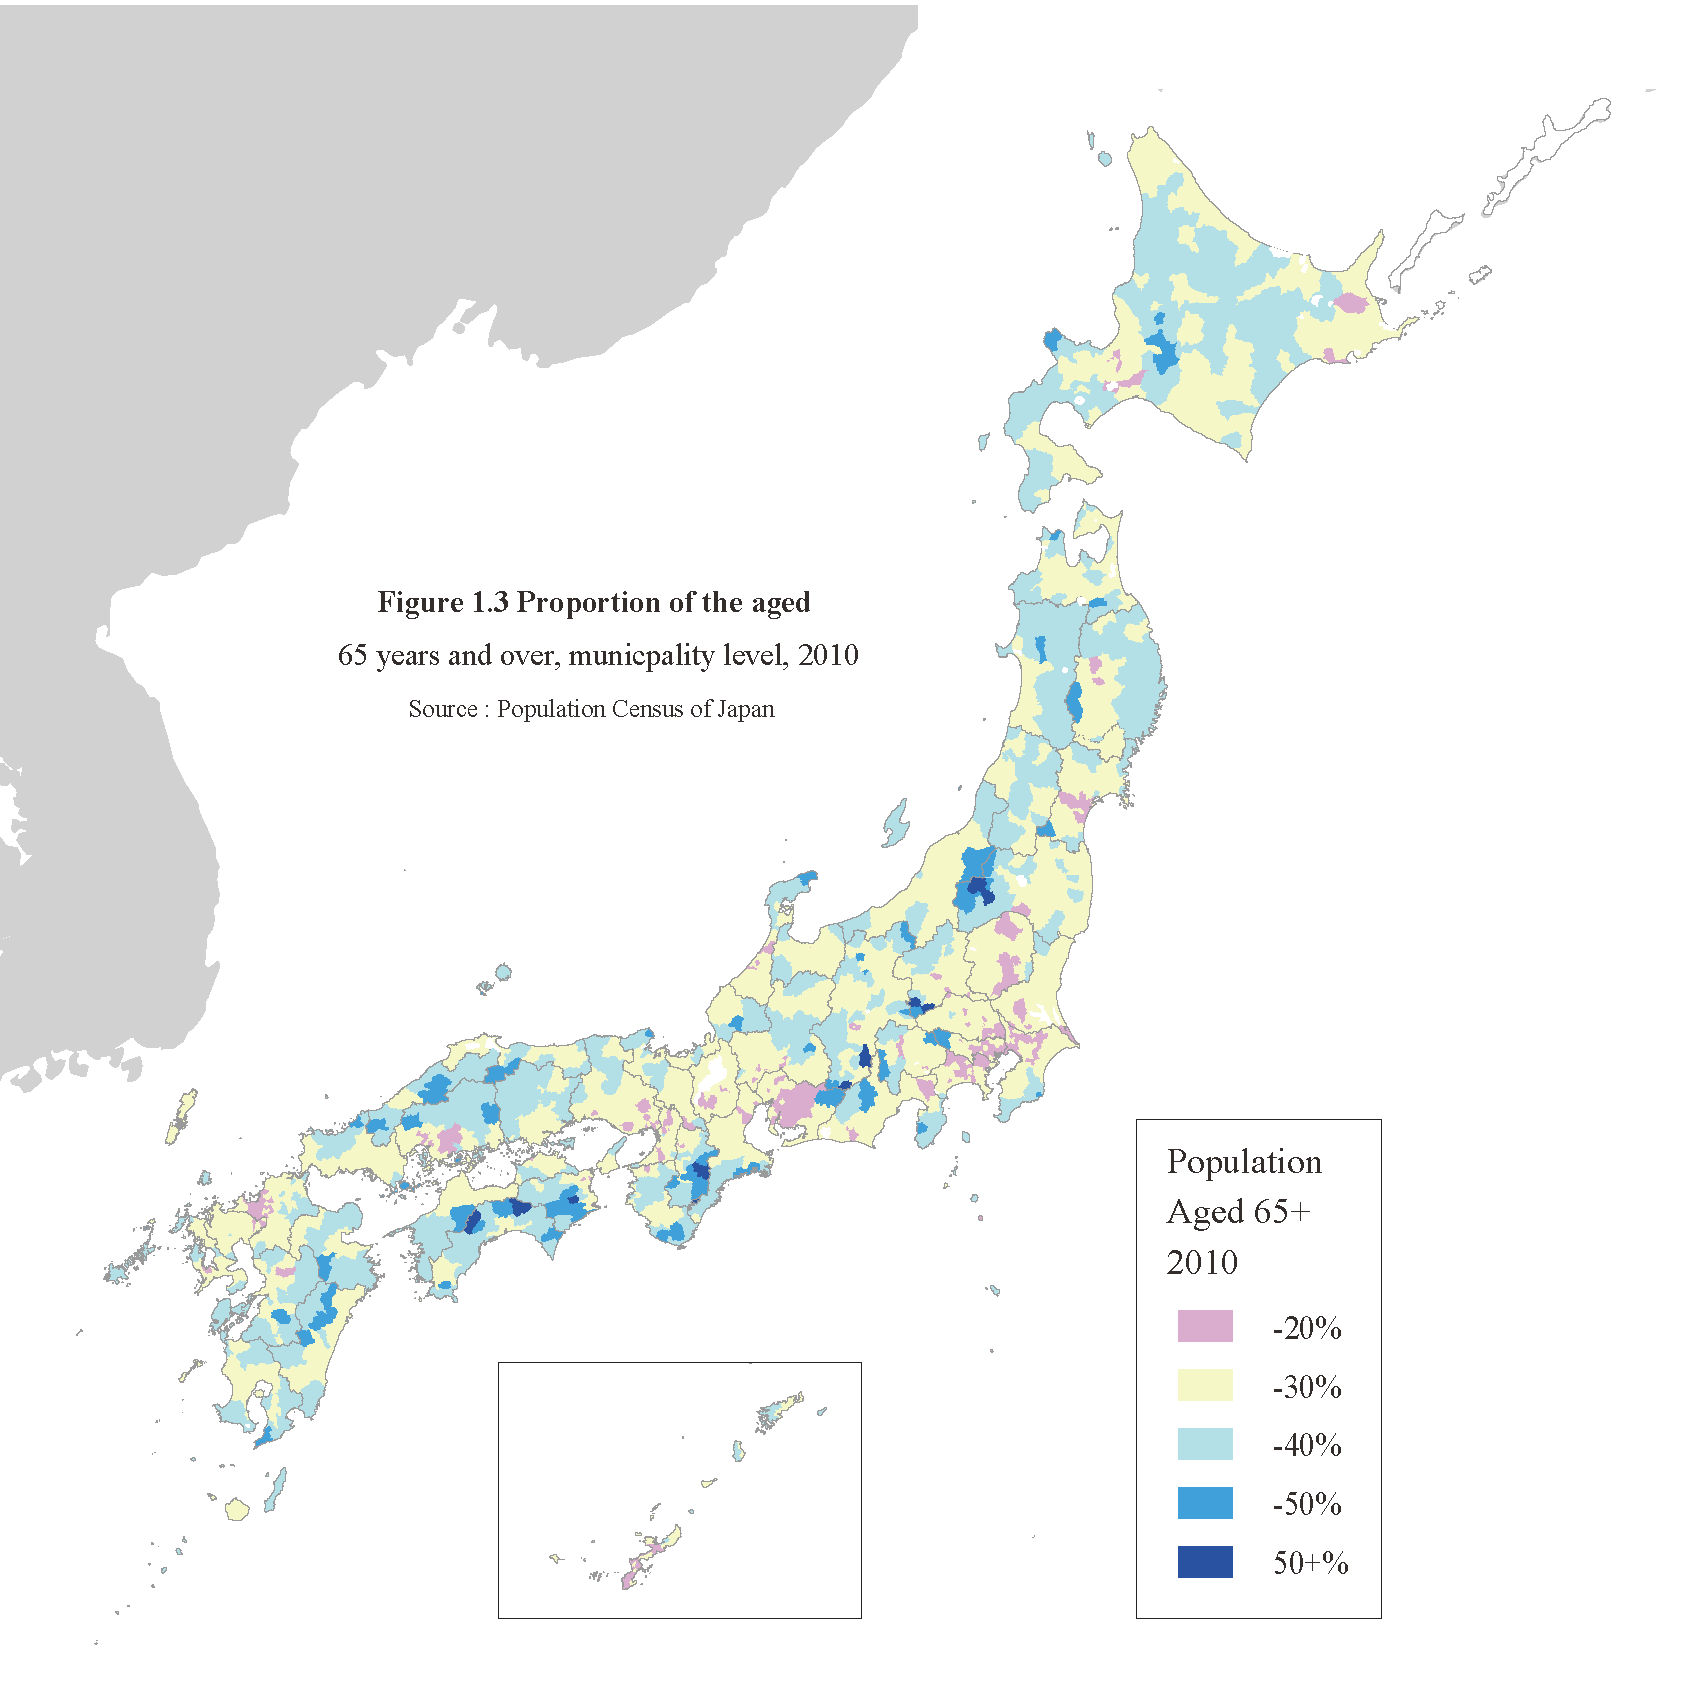 Social Security In Japan Overview Of Population Trends In - Japan map 2014